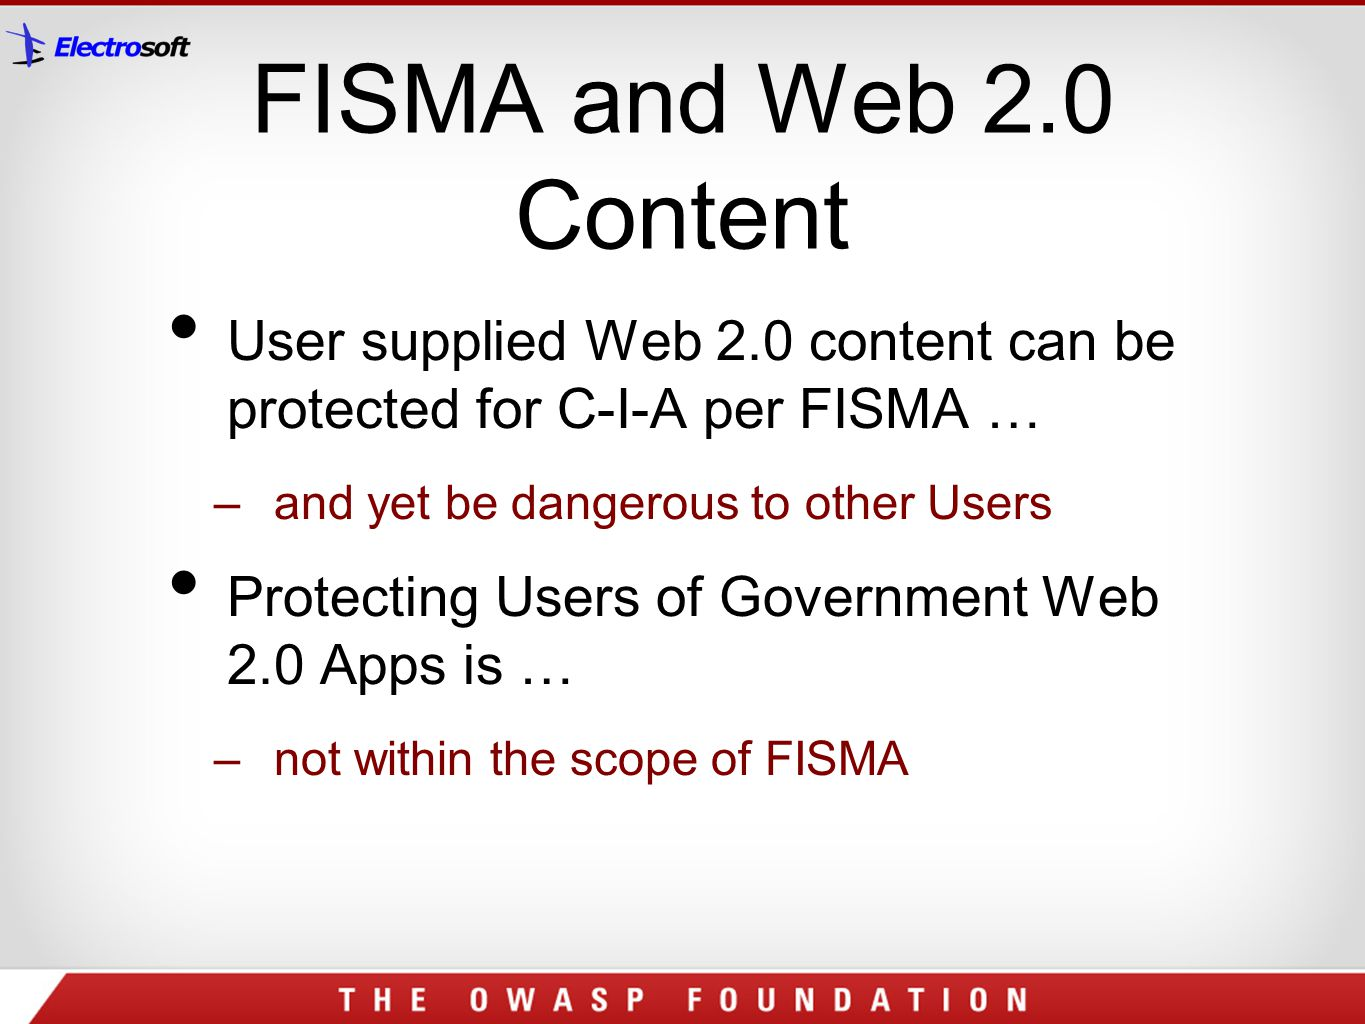 FISMA and Web 2.0 Content User supplied Web 2.0 content can be protected for C-I-A per FISMA … and yet be dangerous to other Users.